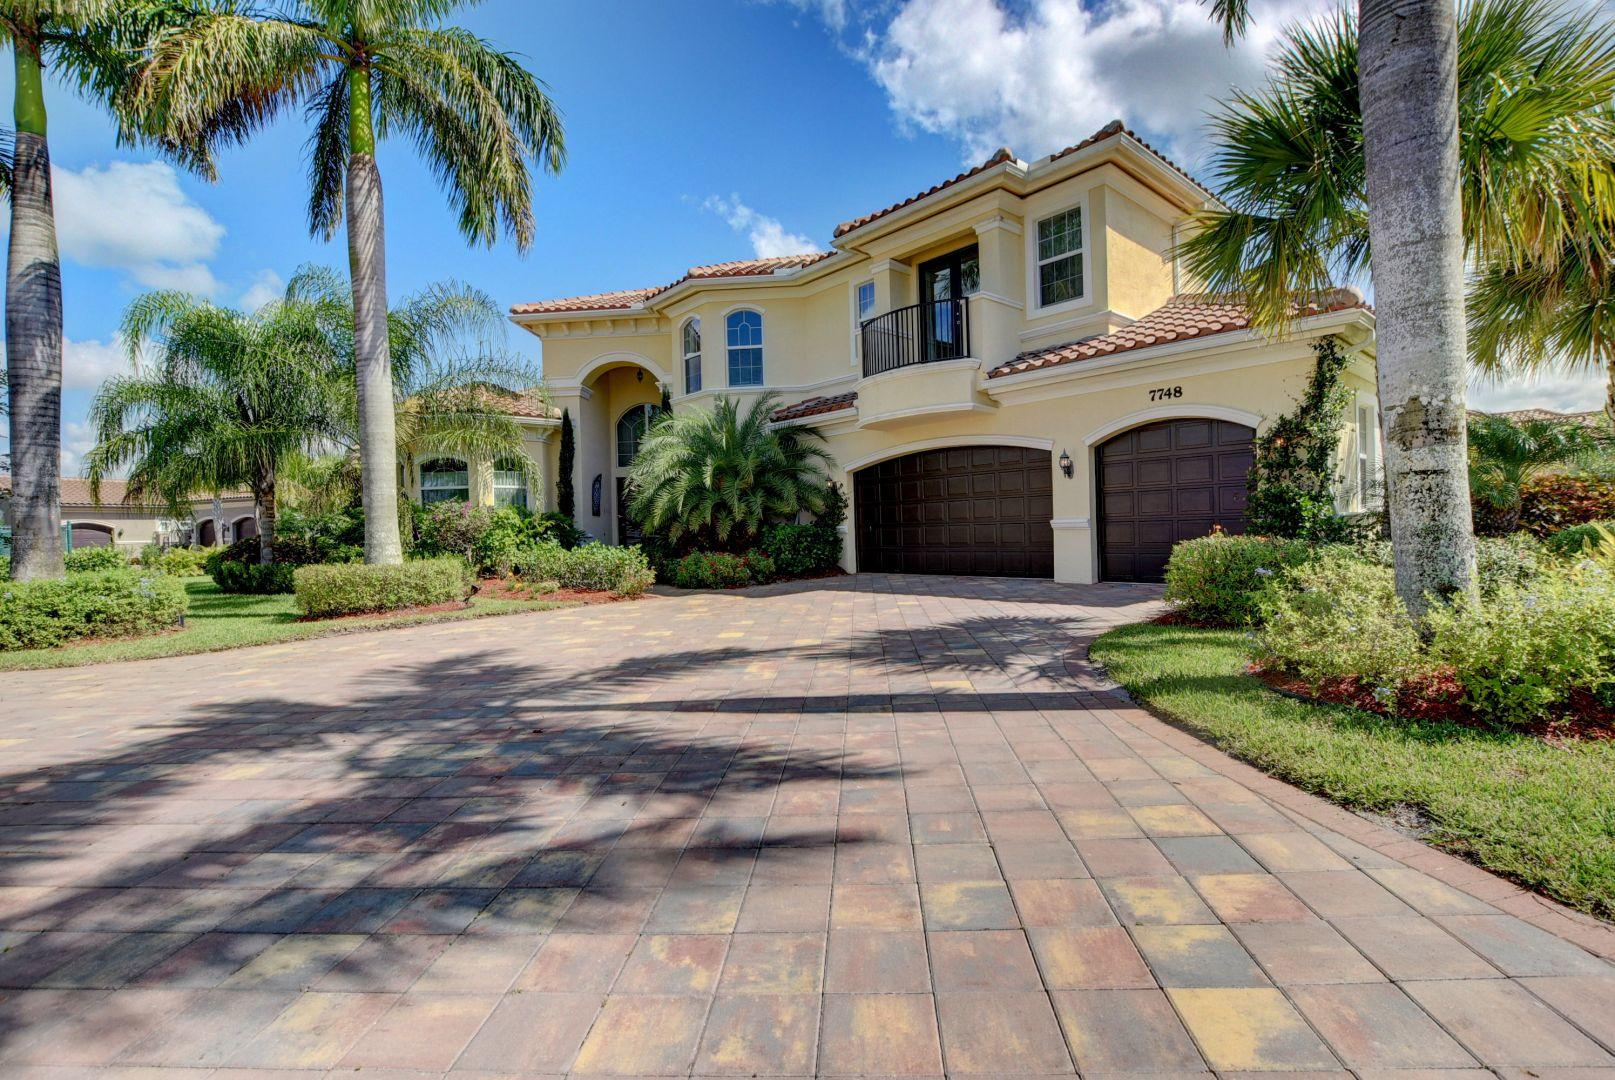 7748 Maywood Crest Drive, Palm Beach Gardens, Florida 33412, 5 Bedrooms Bedrooms, ,6.1 BathroomsBathrooms,Single Family,For Sale,Maywood Crest,RX-10532517